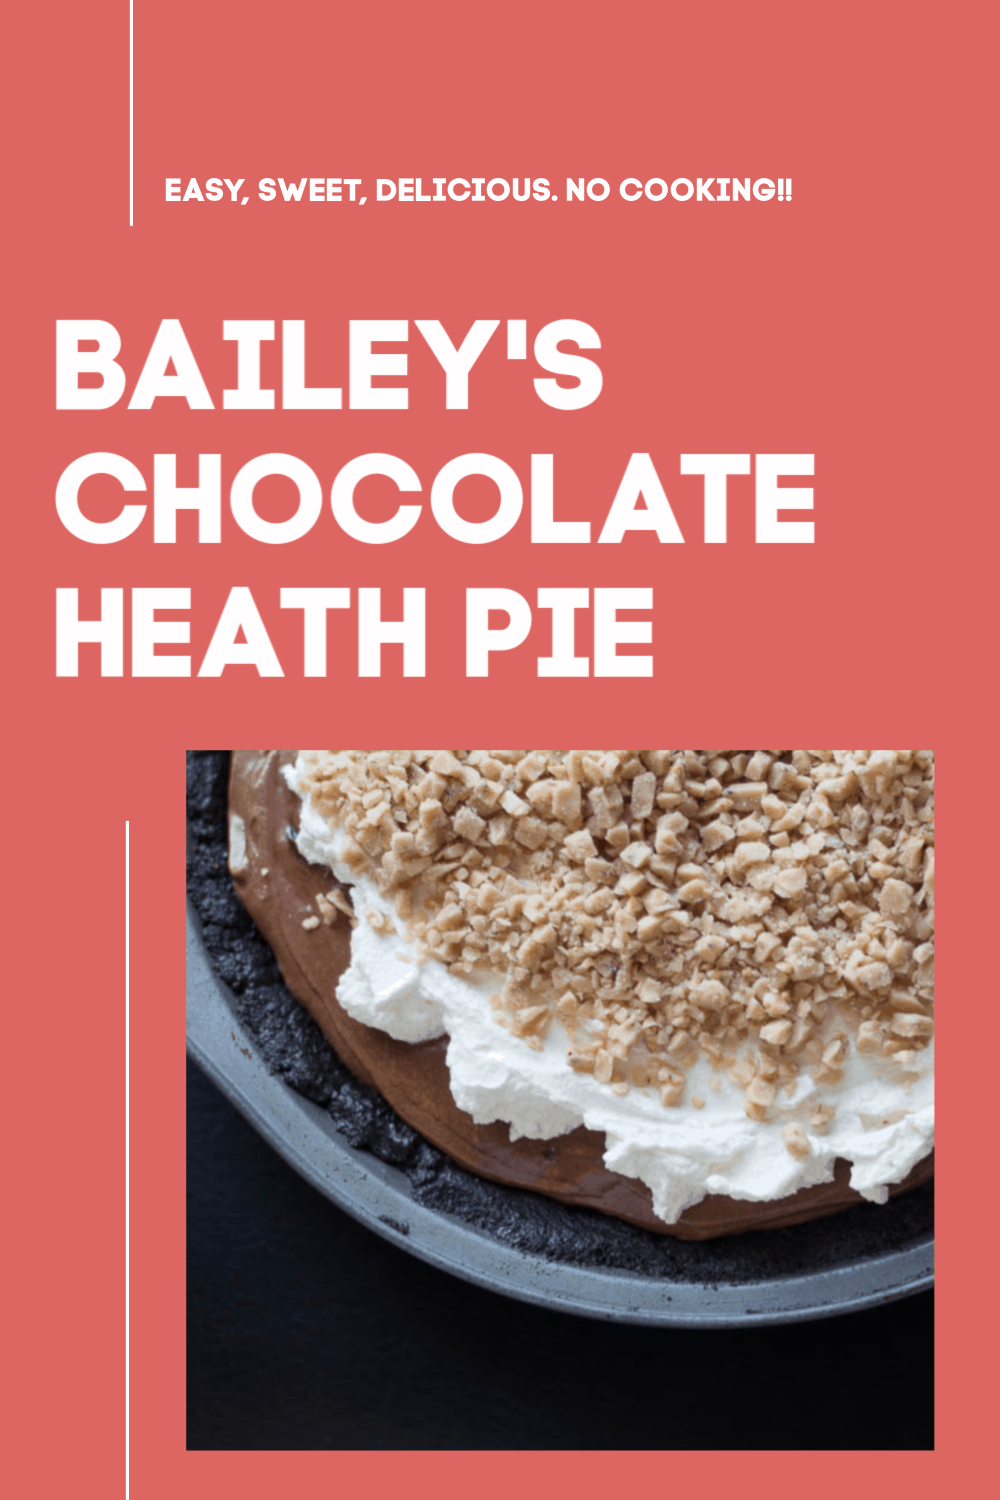 Bailey's Chocolate Heath Pie